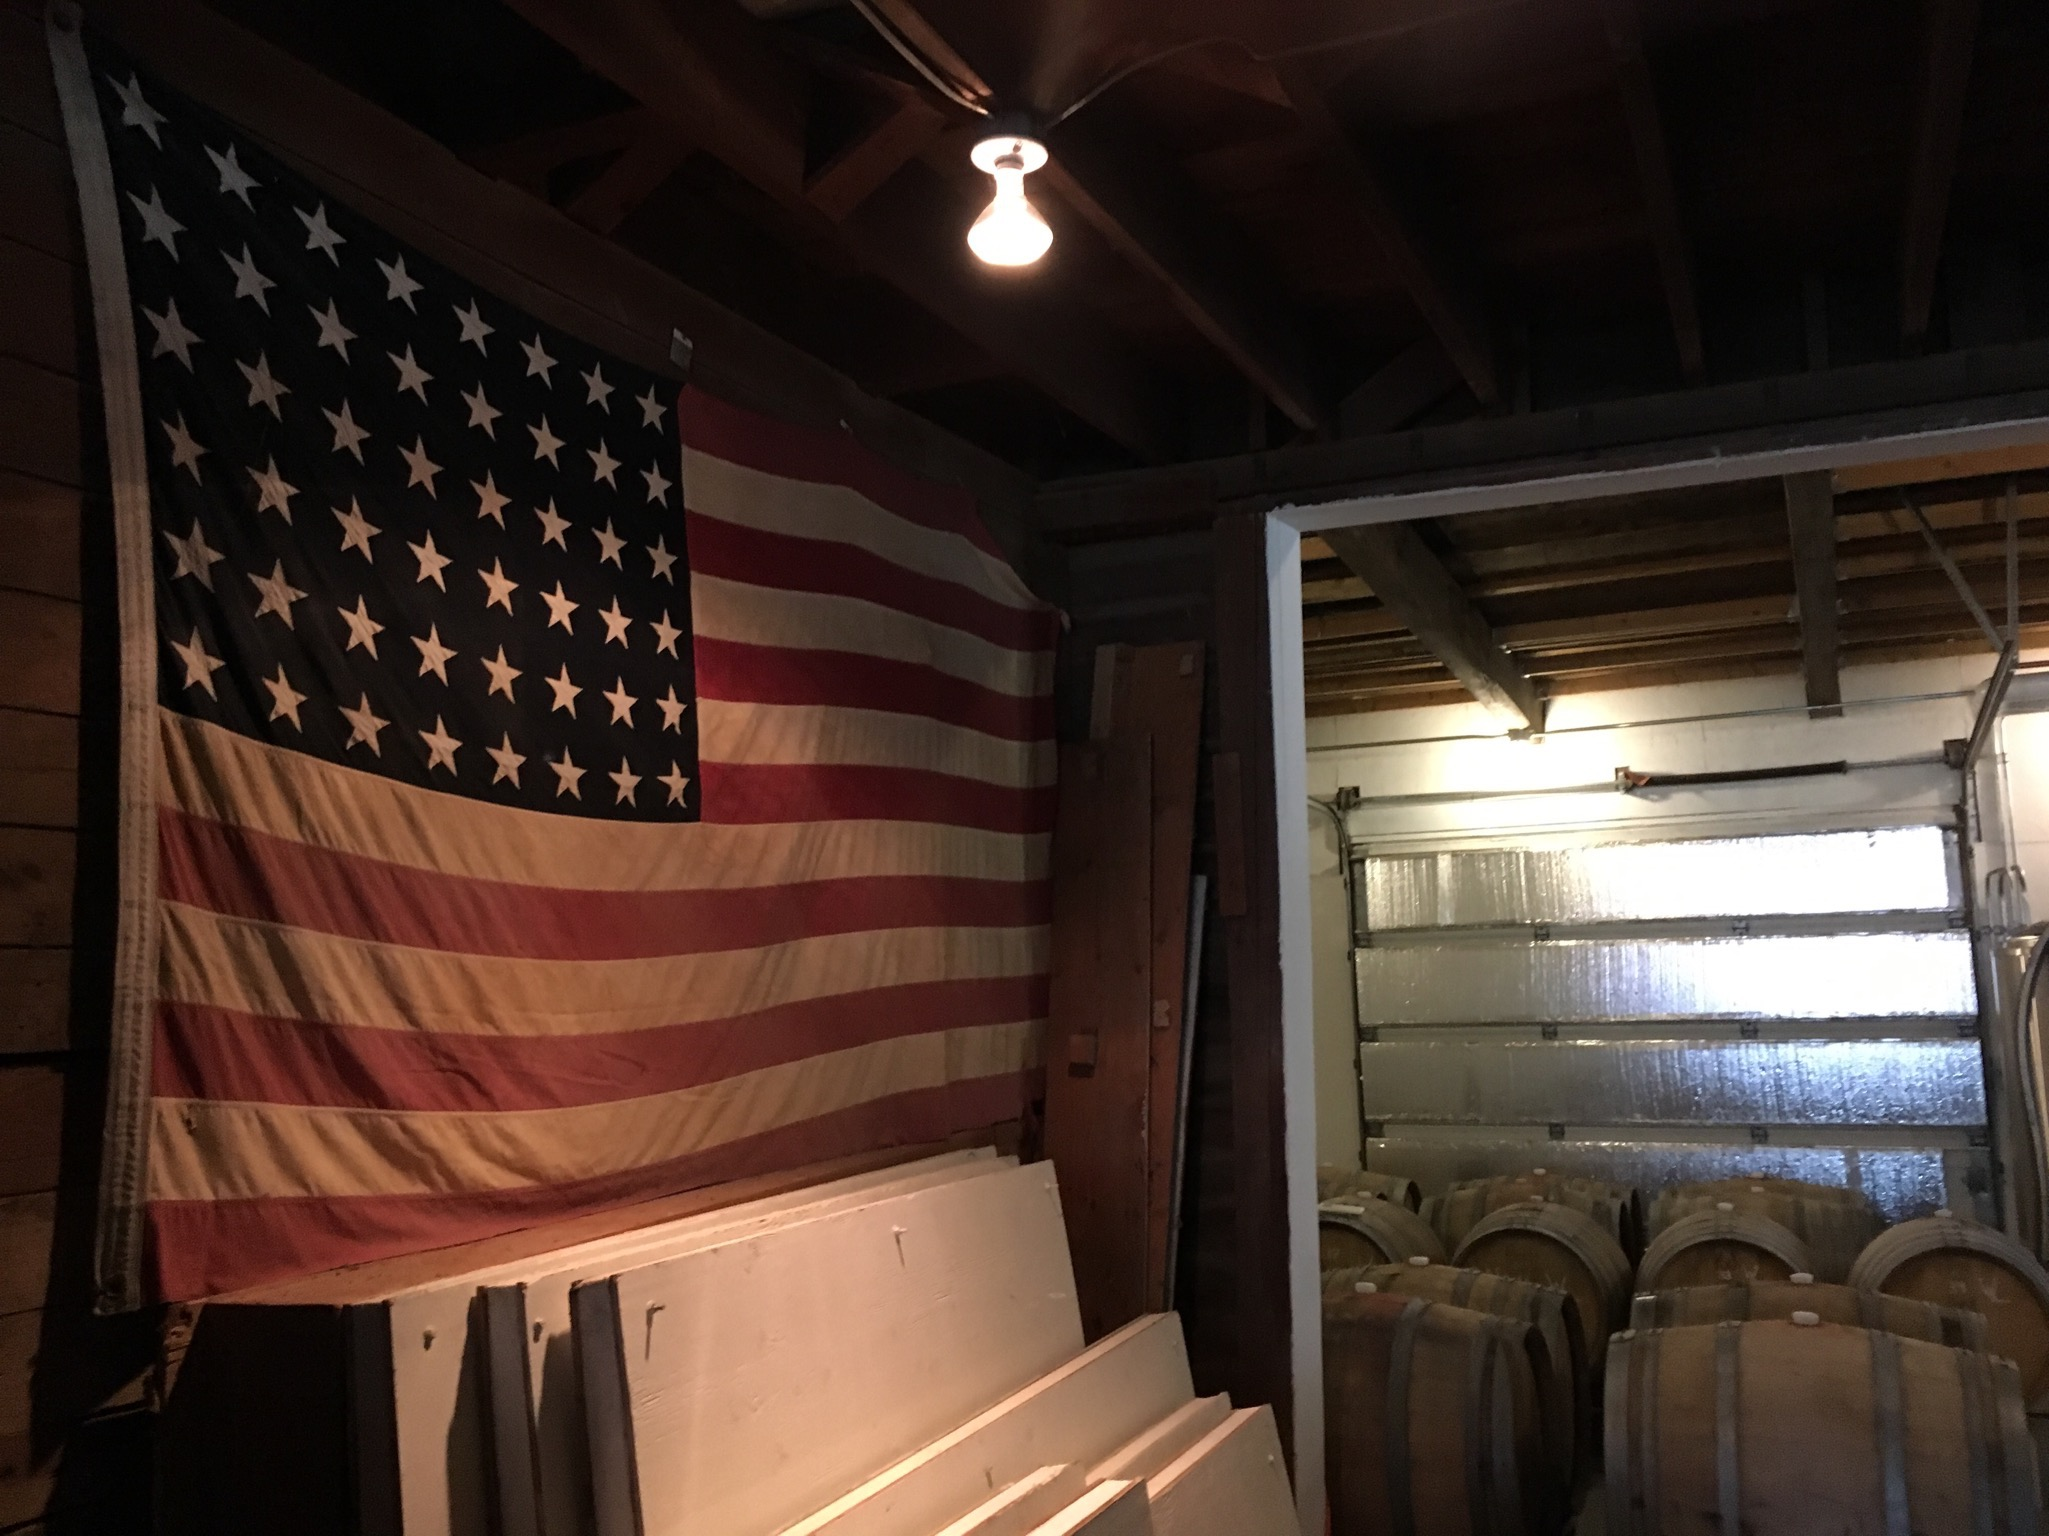 48 Star United States Flag inside Wolves & People Farmhouse Brewery. (photo by Cat Stelzer)